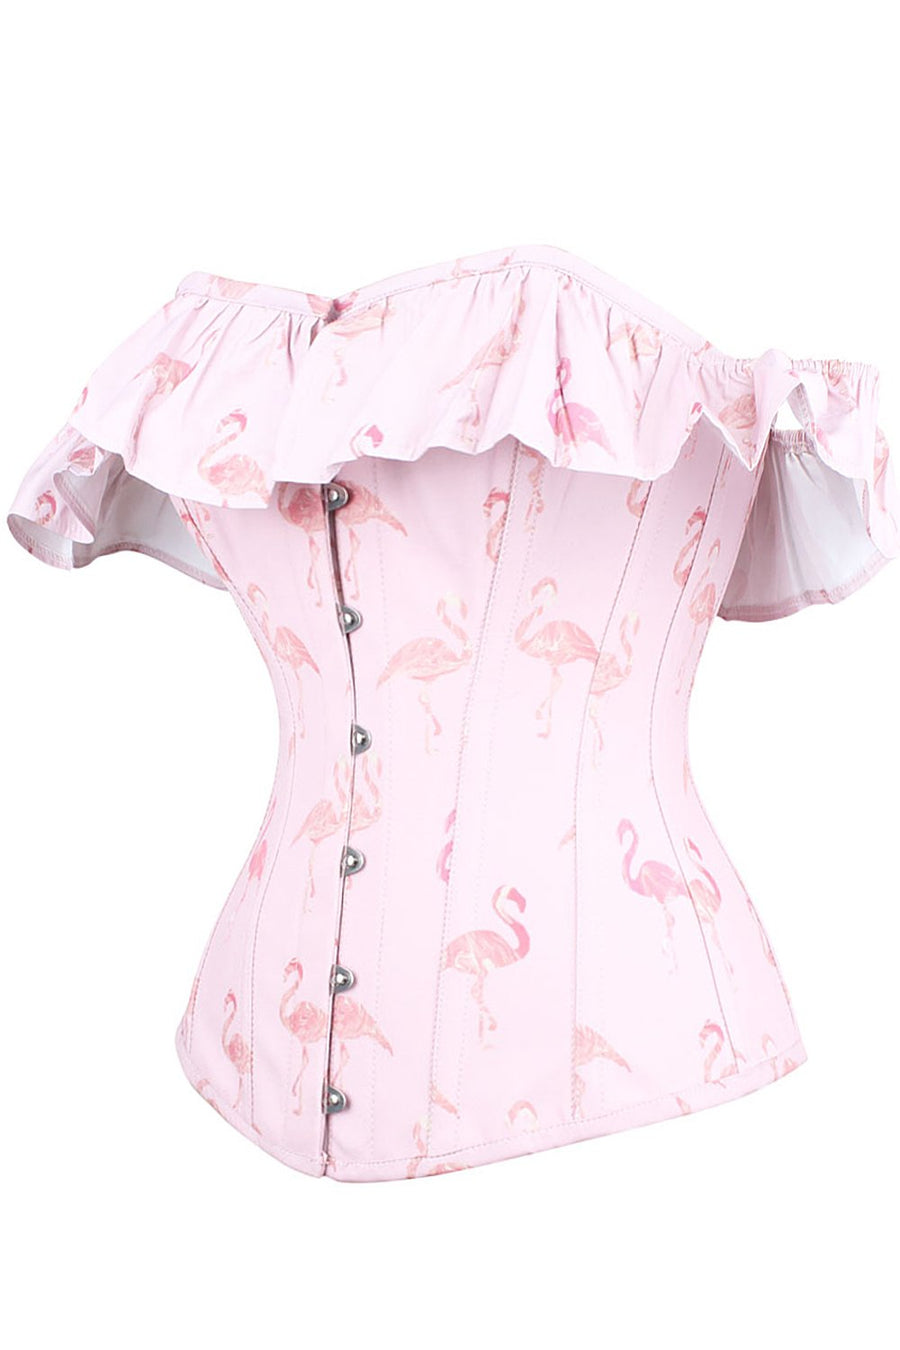 Pink Flamingo Corset Top with Sleeves